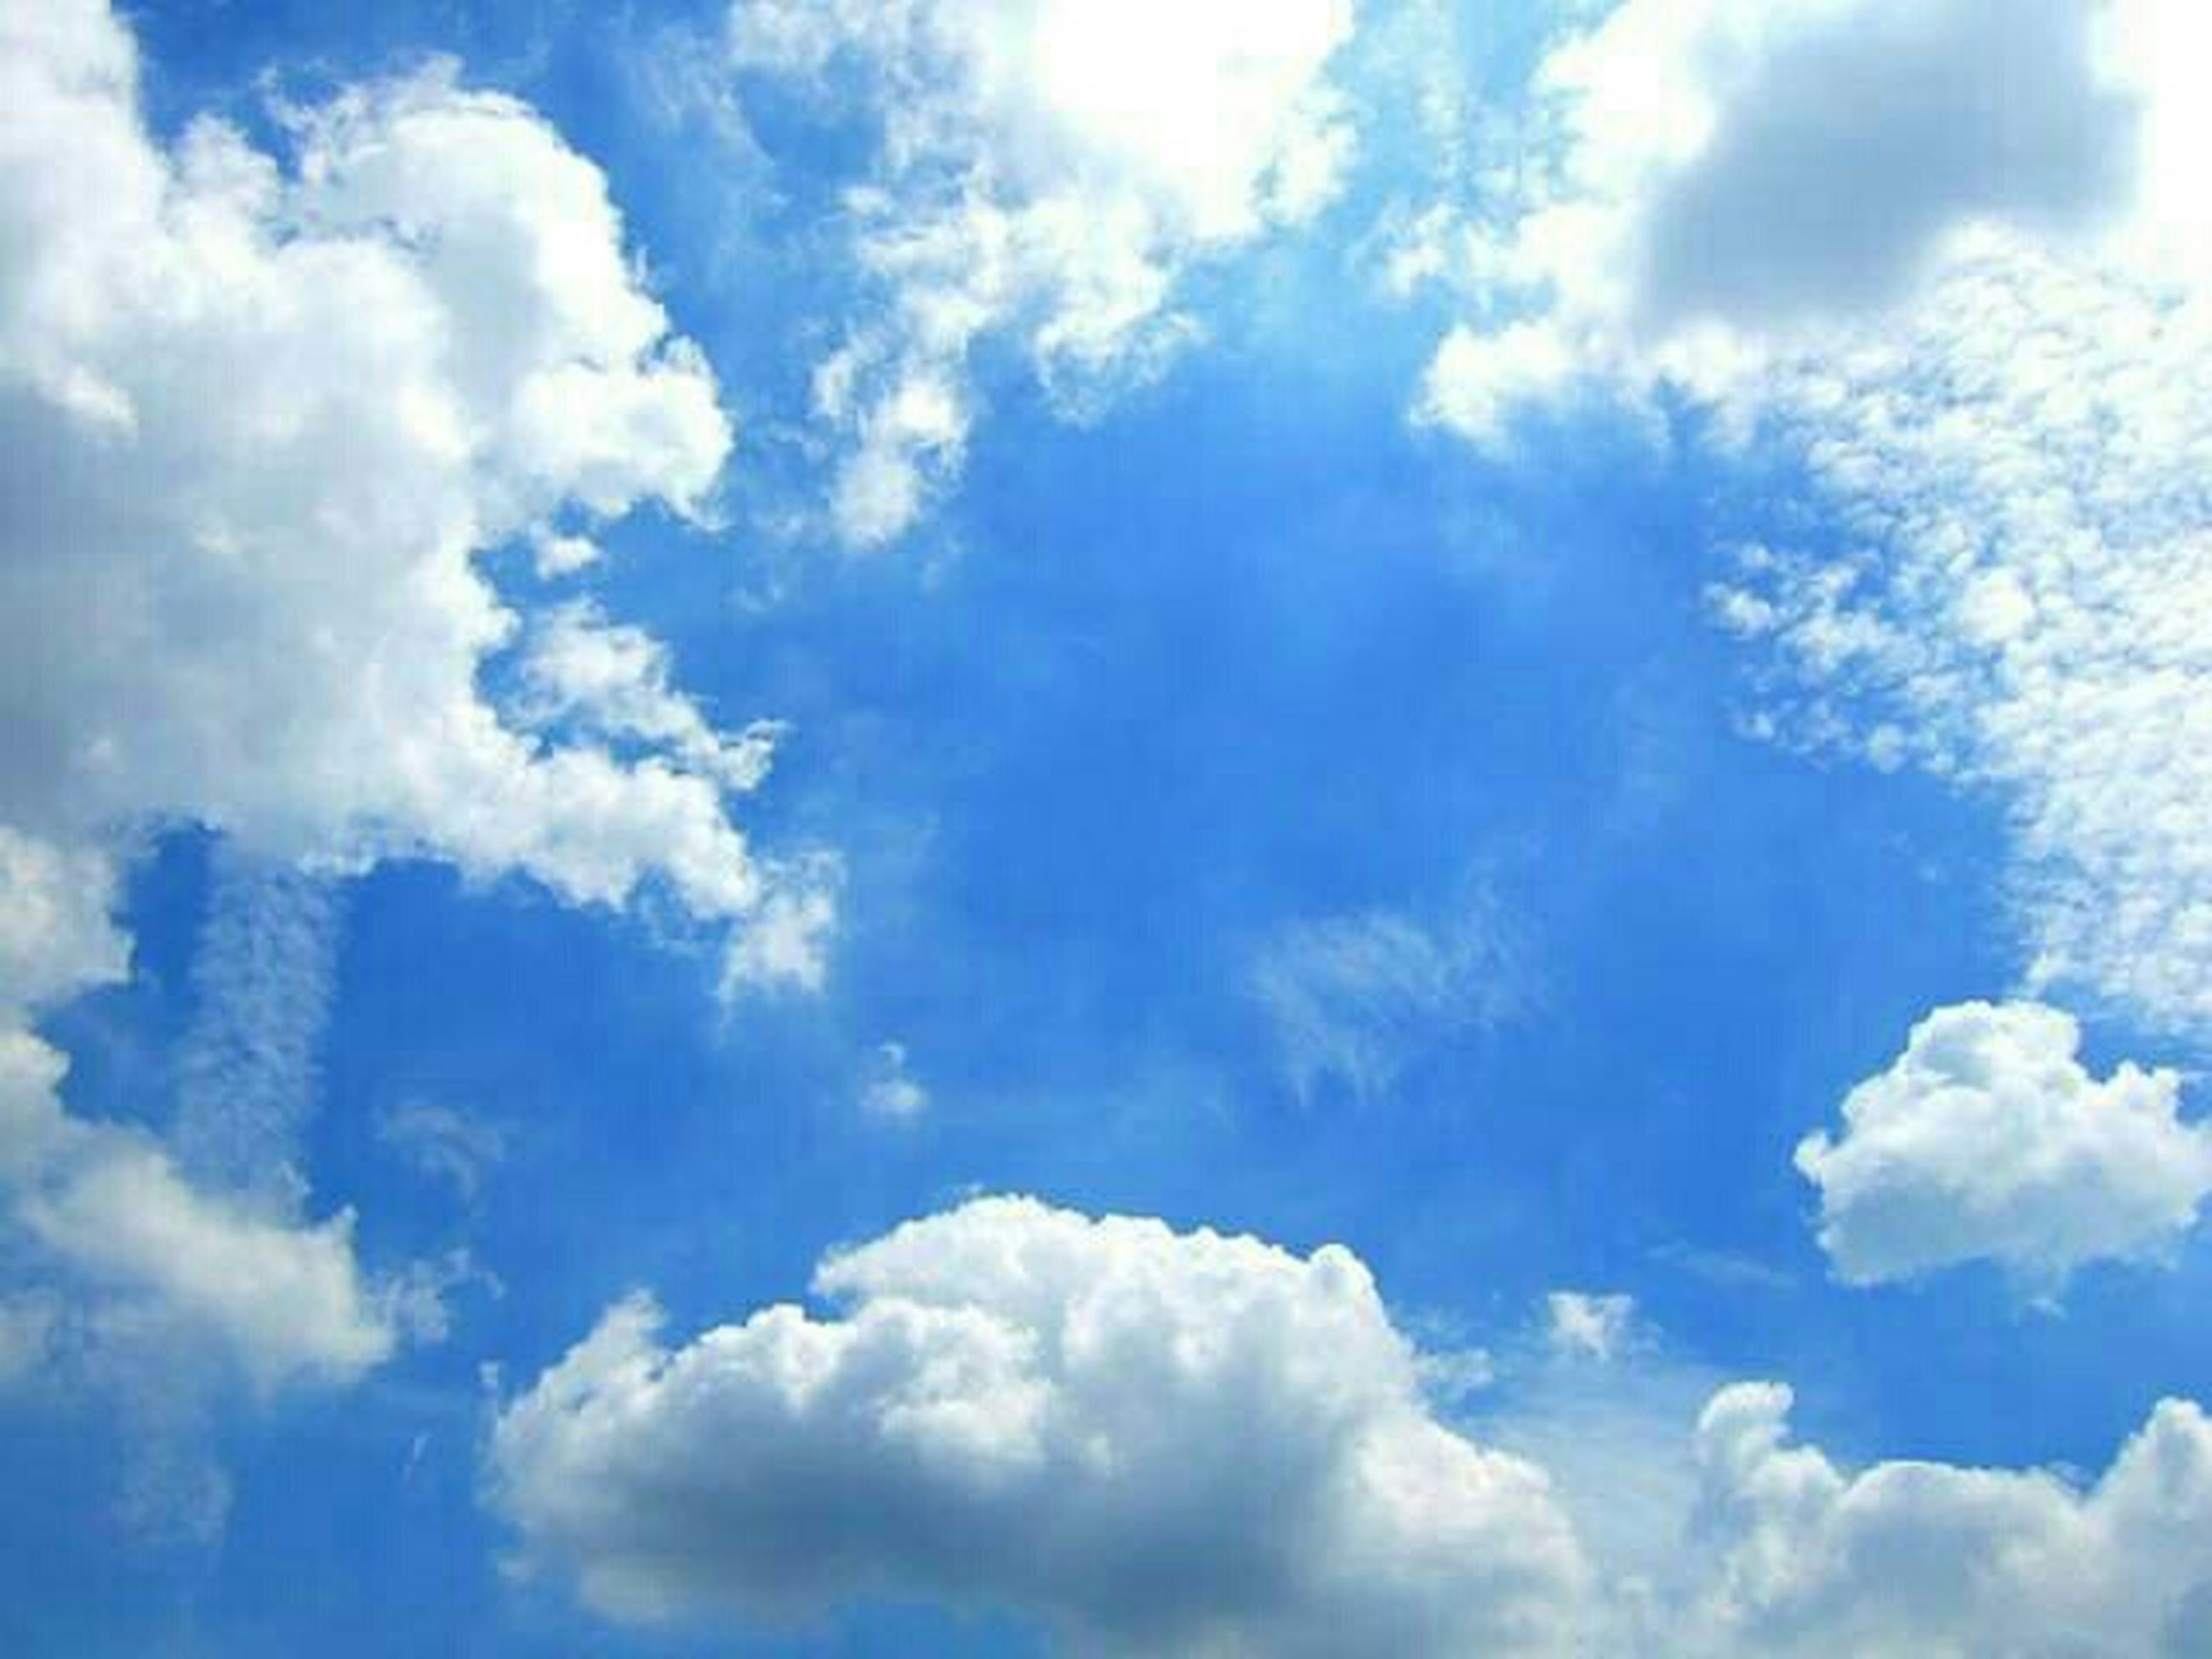 sky, low angle view, sky only, cloud - sky, blue, beauty in nature, tranquility, scenics, nature, backgrounds, cloudscape, cloudy, tranquil scene, white color, cloud, full frame, fluffy, idyllic, day, softness